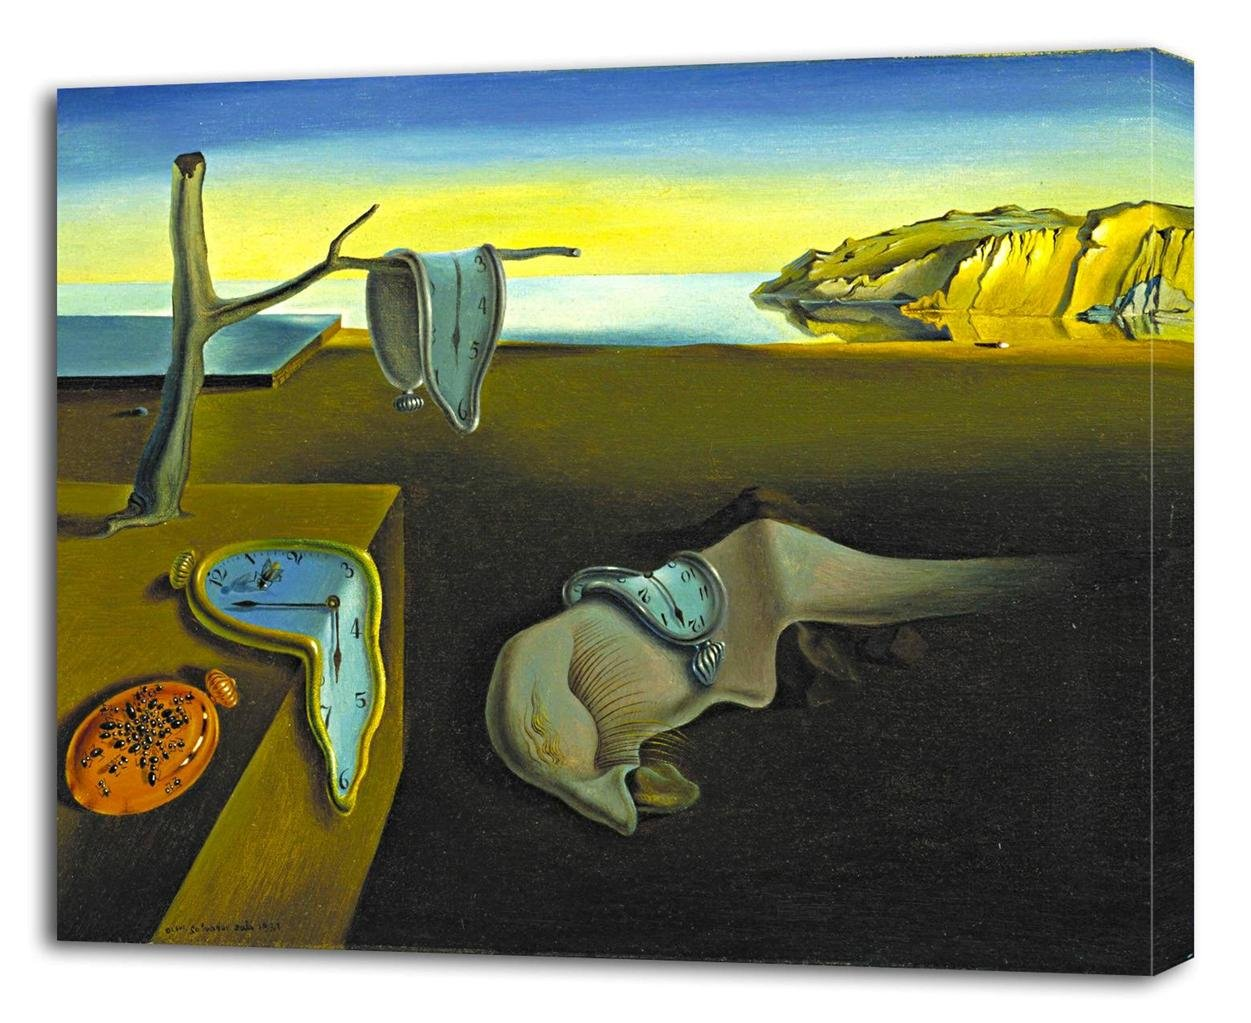 Amazon.com: SALVADOR DALI The Persistence of Memory CANVAS PRINT Wall Decor Art Painting On P019, 6: Posters & Prints